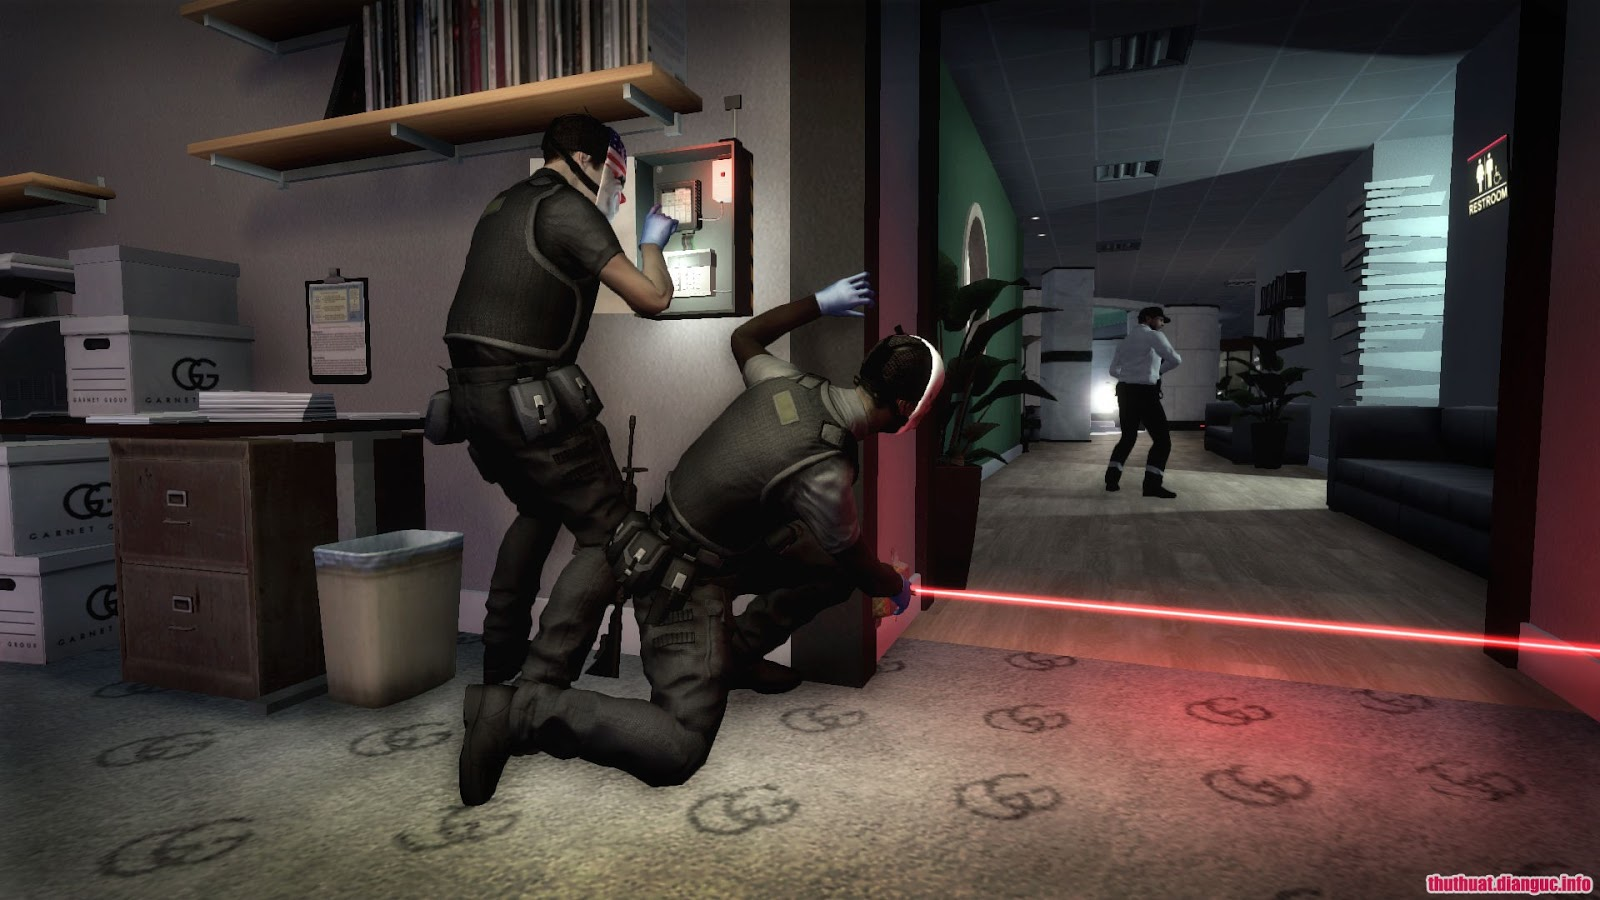 Tải Game PAYDAY 2 Full Crack, Tải game Payday 2 miễn phí, Payday 2, Payday 2 free download,